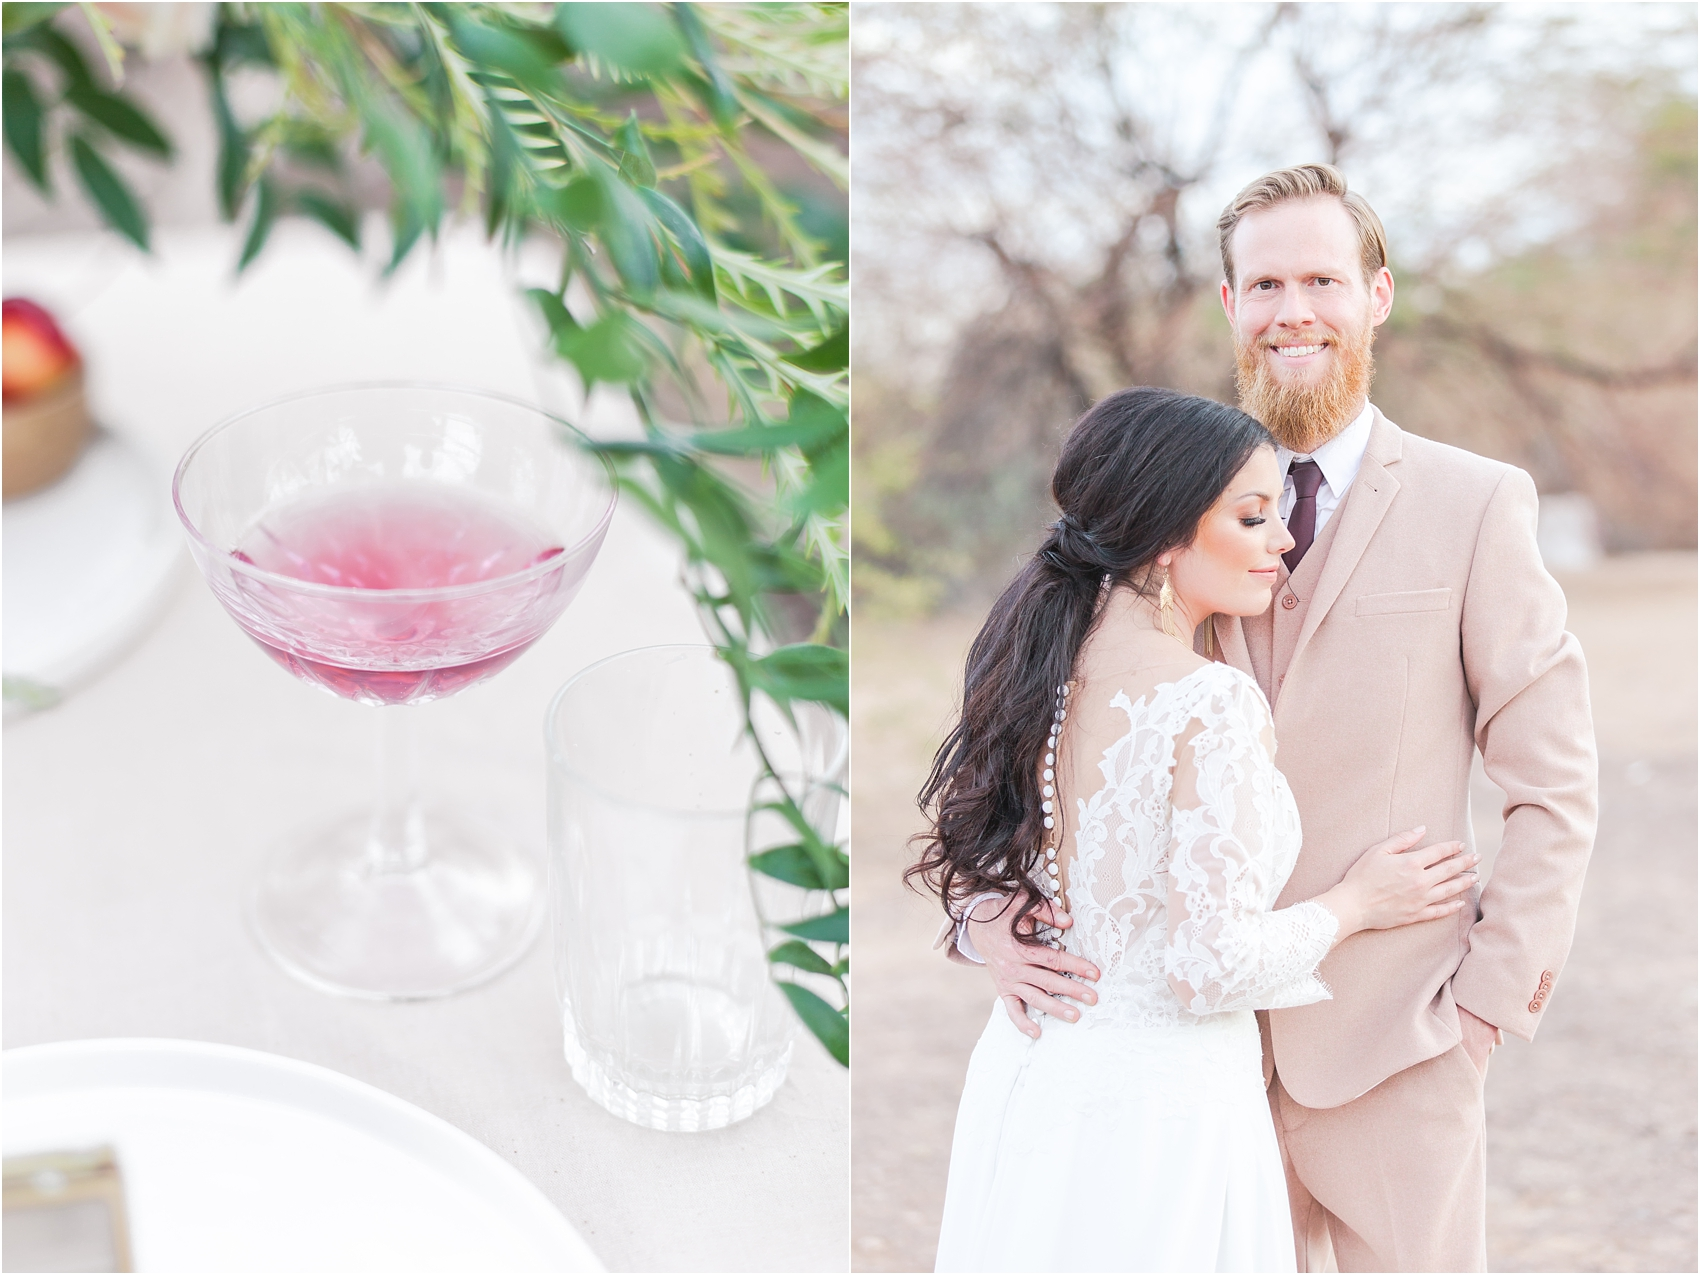 intimate-and-romantic-desert-wedding-photos-at-phoenix-marriott-tempe-at-the-buttes-in-tempe-arizona-by-courtney-carolyn-photography_0032.jpg